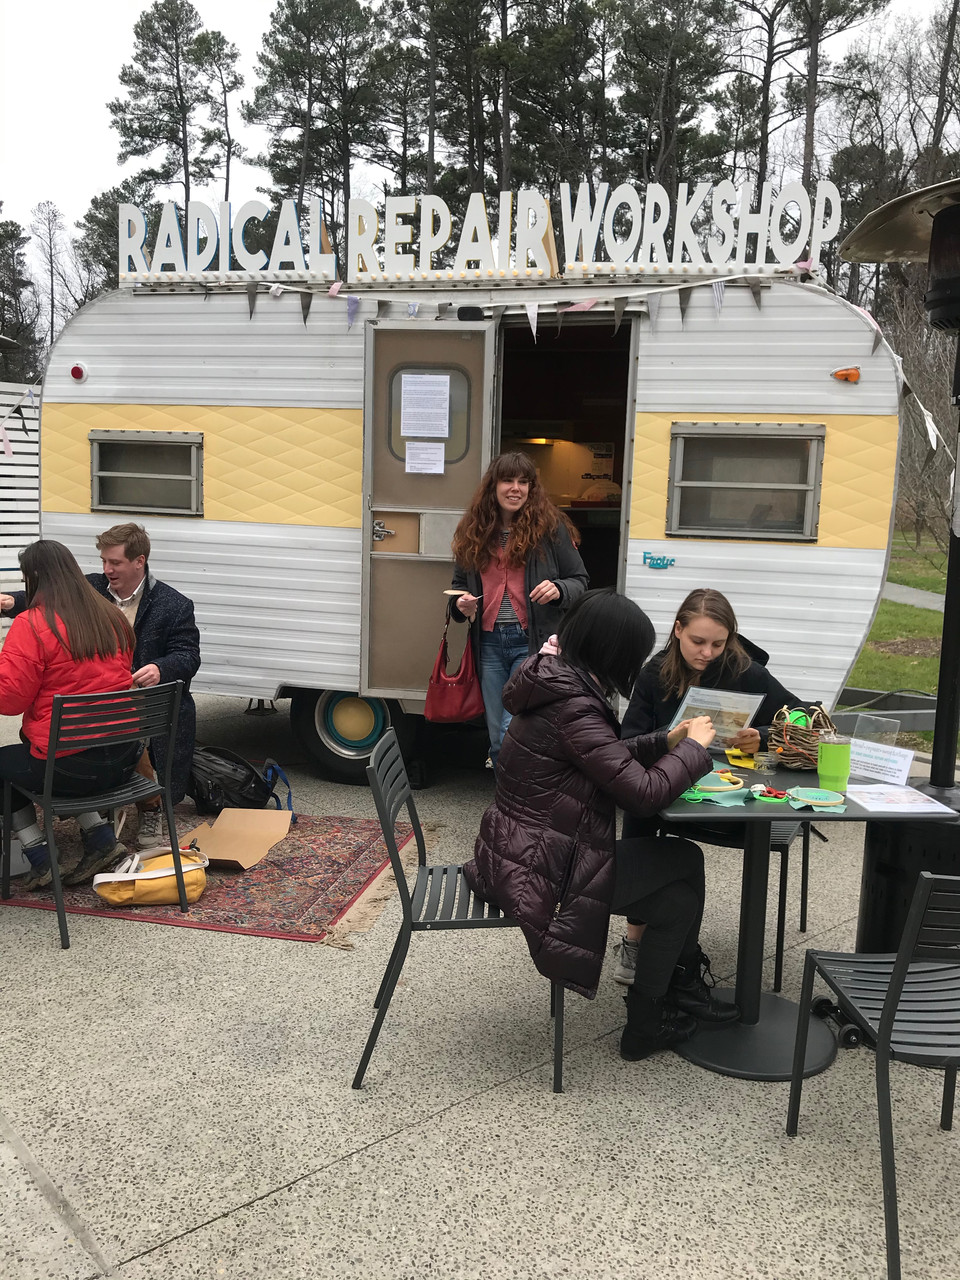 """A camper van that has the sign """"Radical Repair Workshop"""" on top of it and people at tables outside working on projects."""